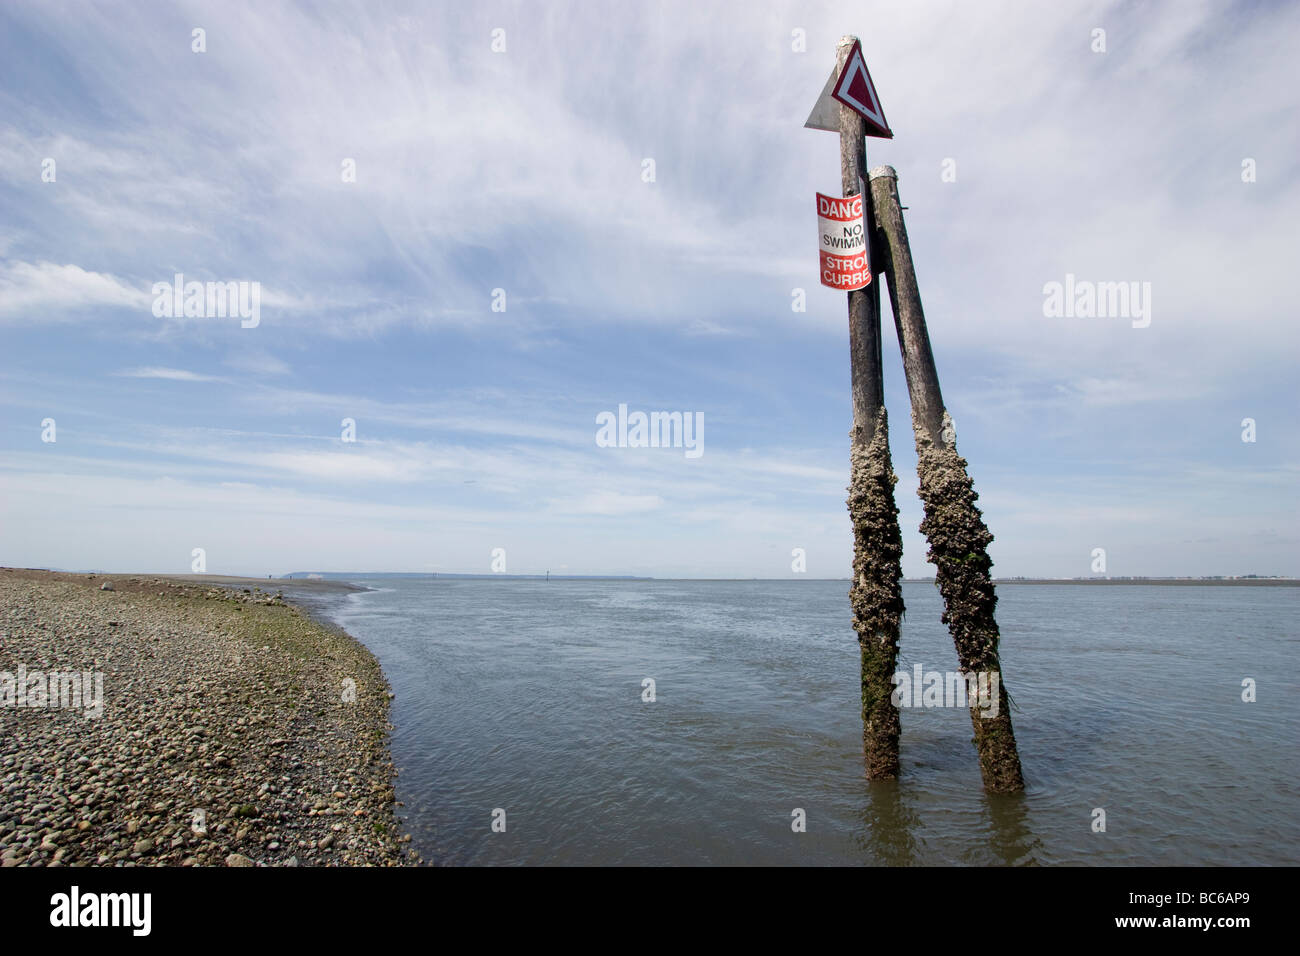 crescent beach Vancouver canada danger no swimming strong current sign - Stock Image